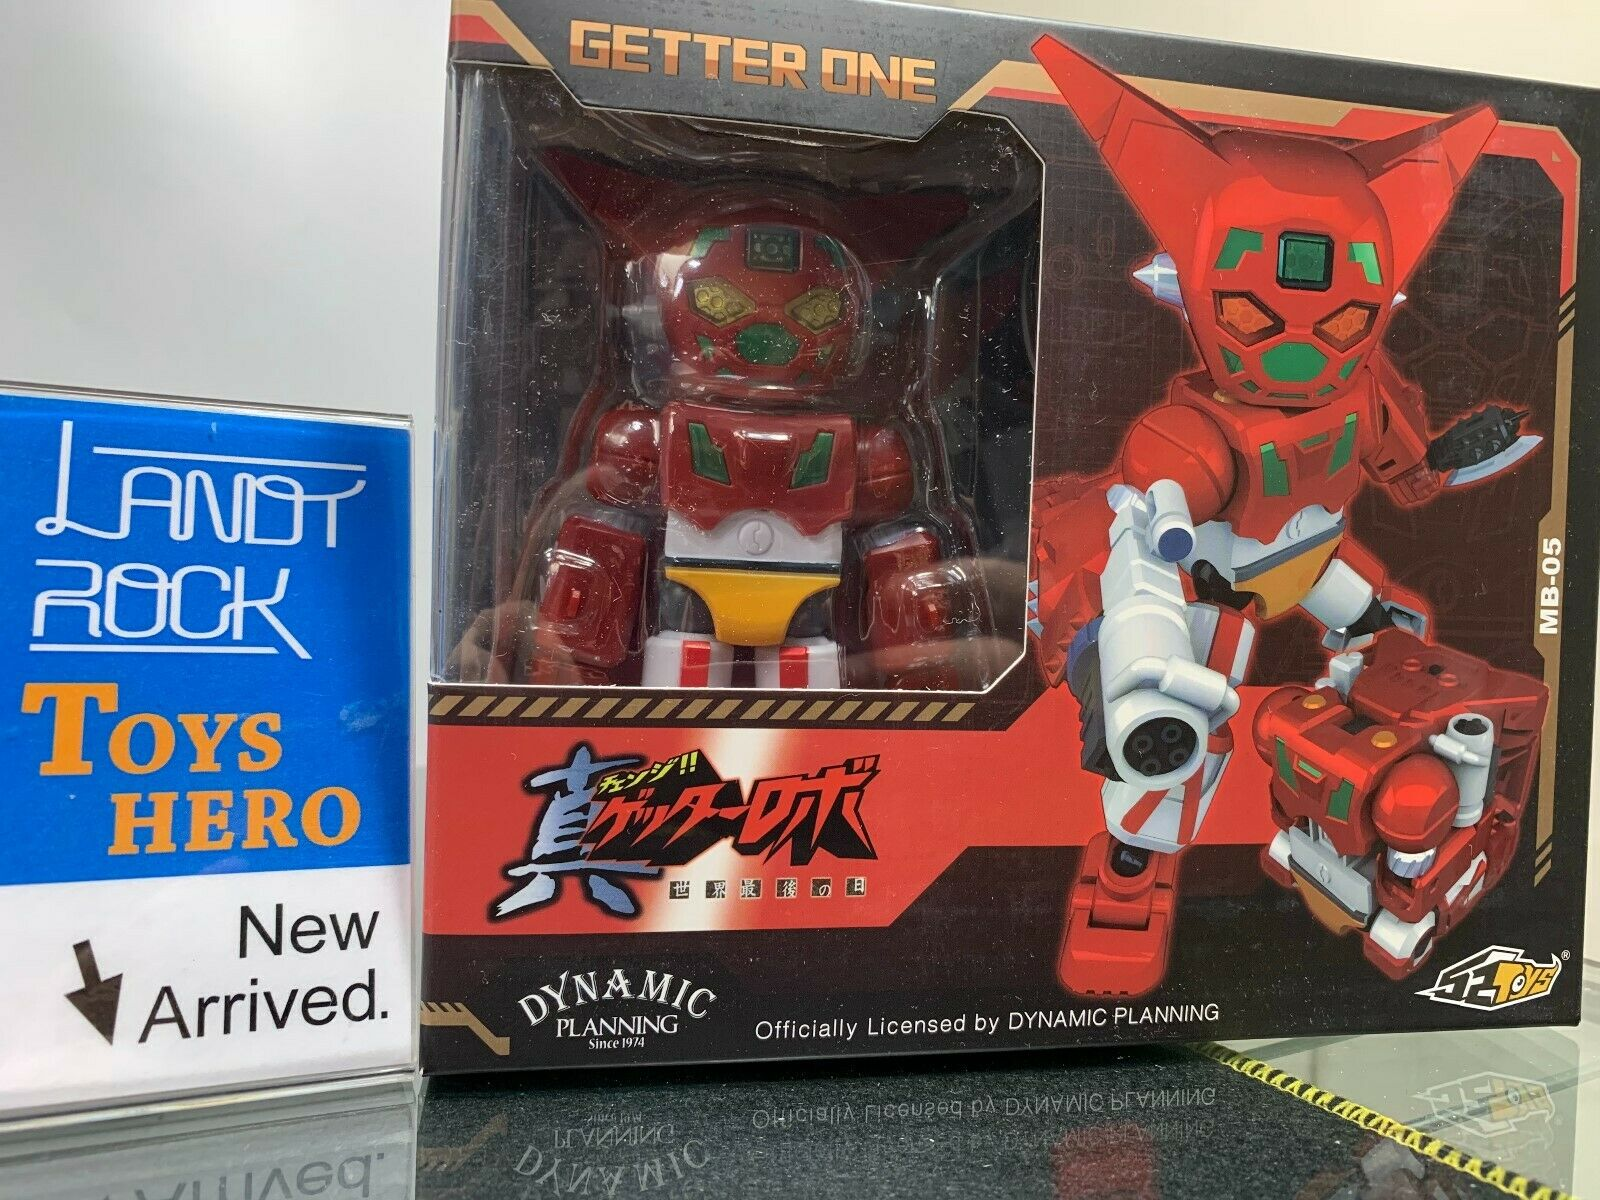 [Toys Hero] In Hand 52Toys MEGABOX Getter One One One Robot MB-05 Red color 60491b